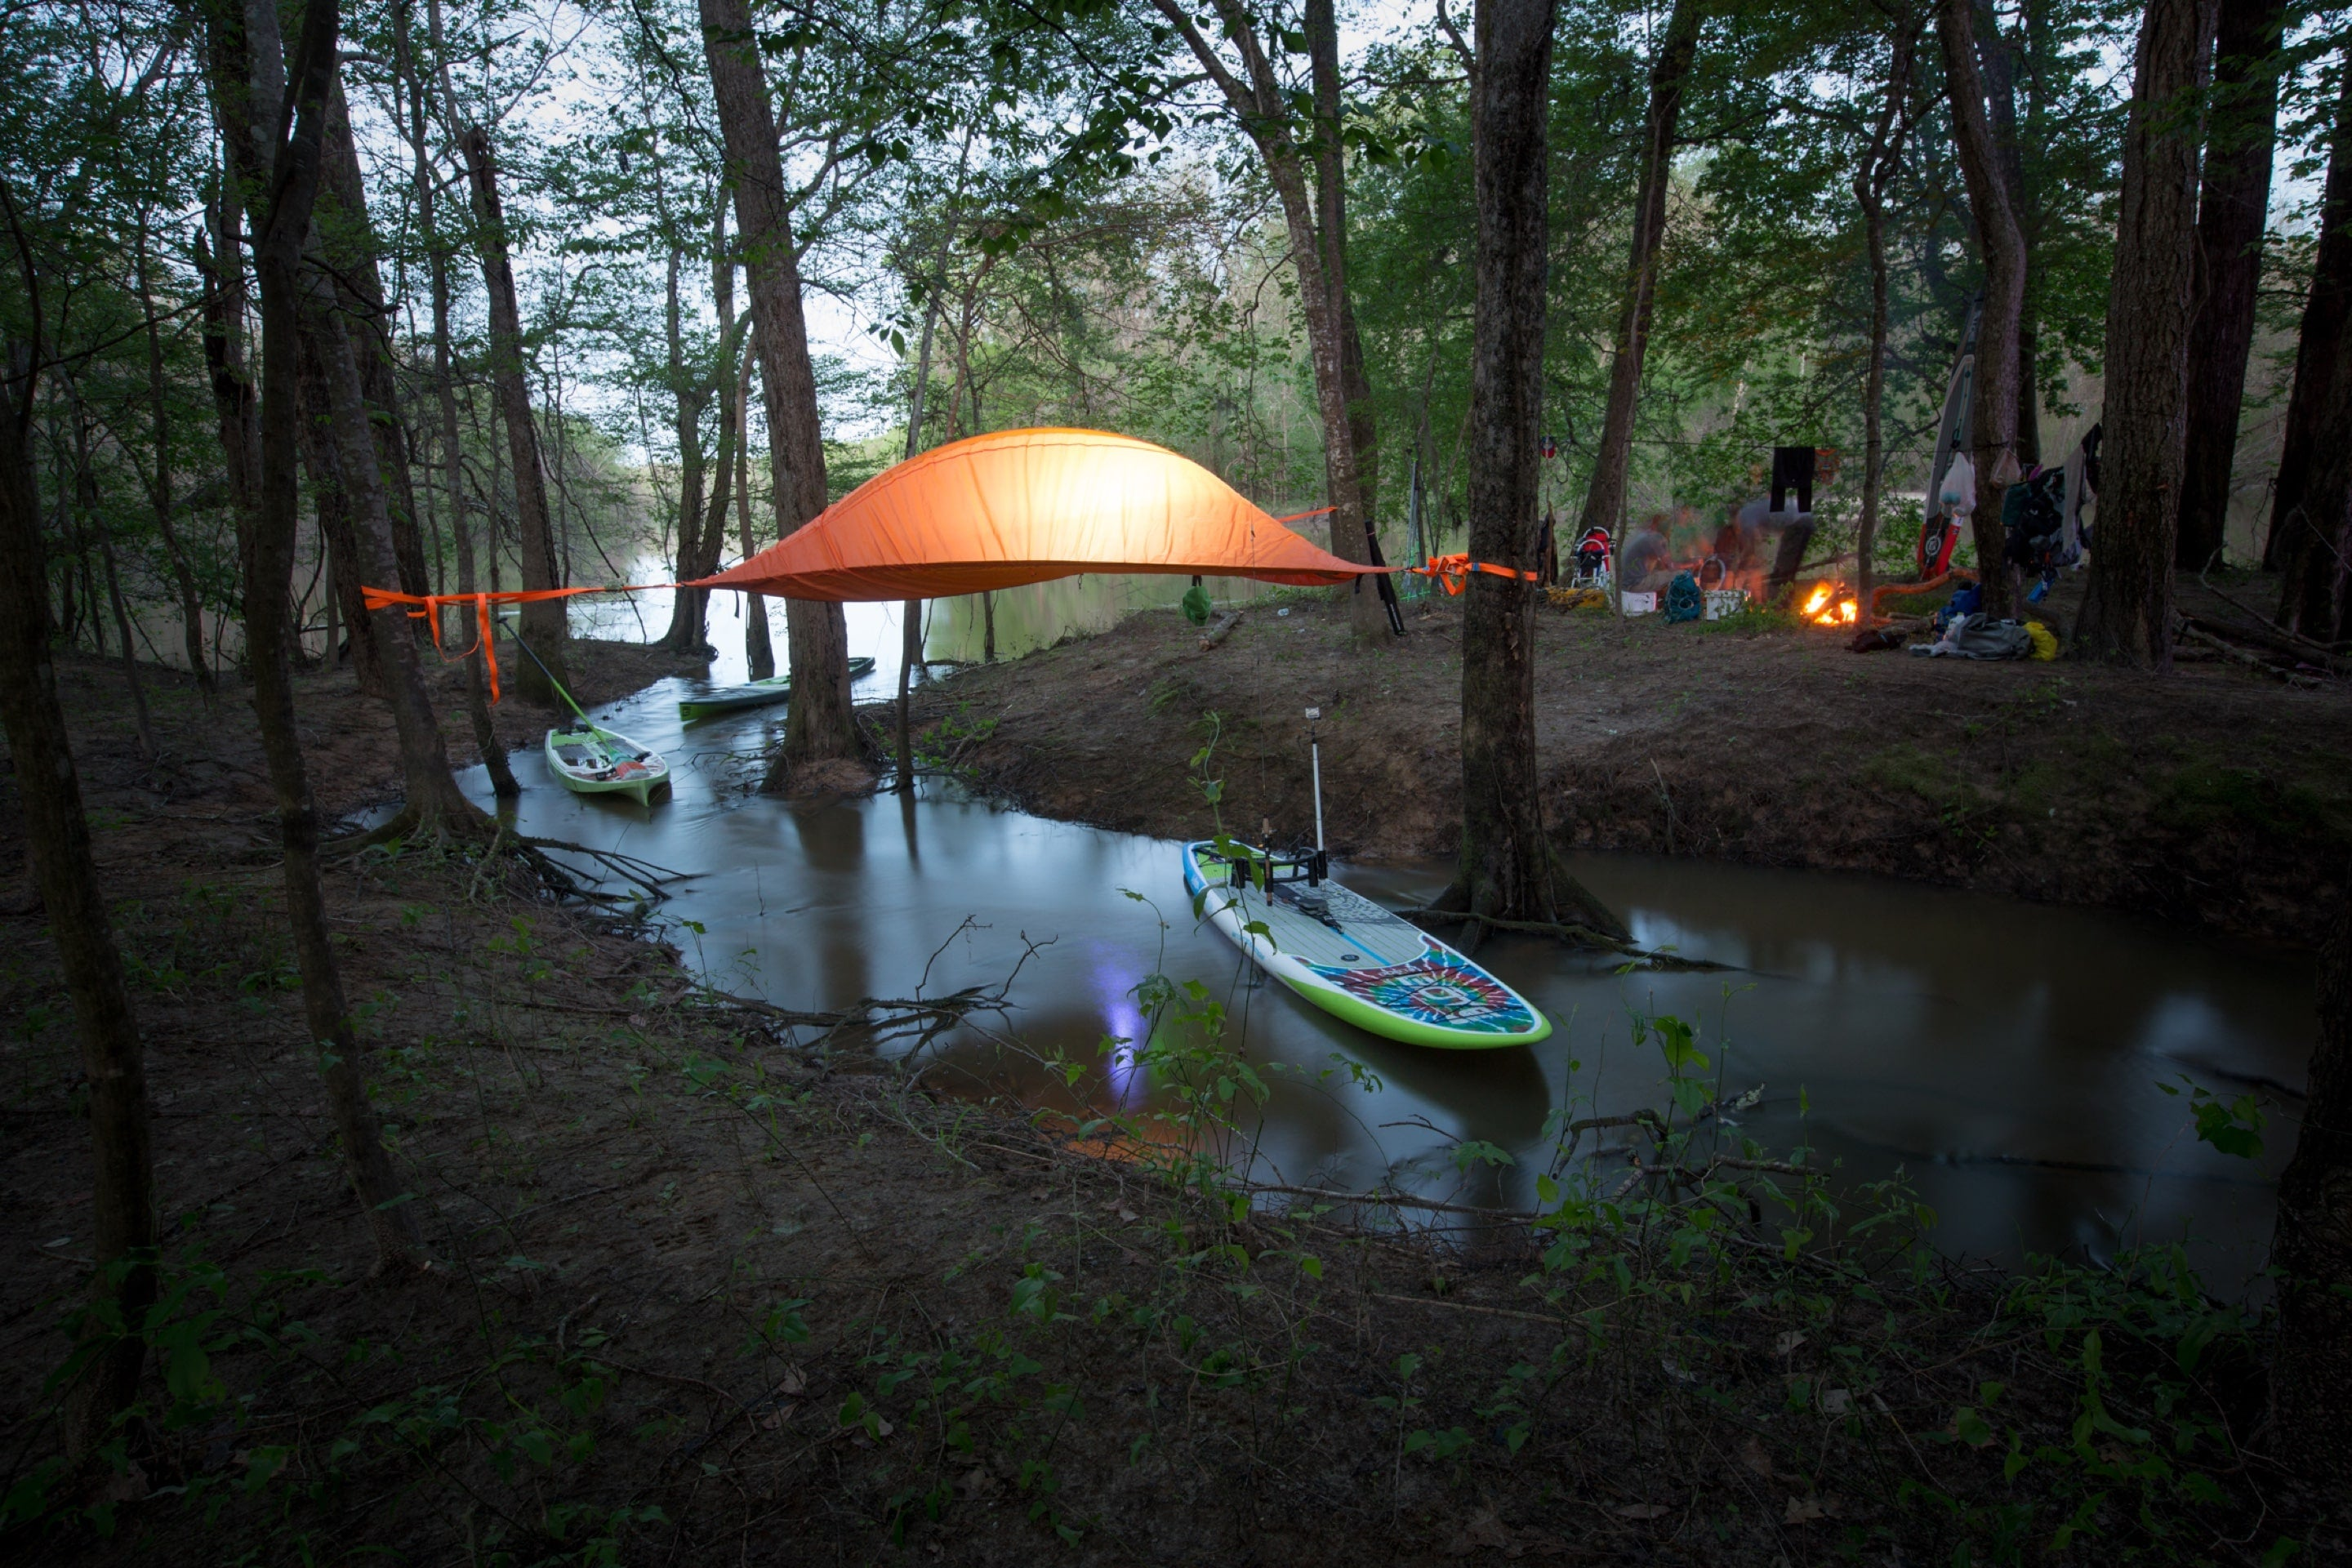 Camping along the Apalachicola River